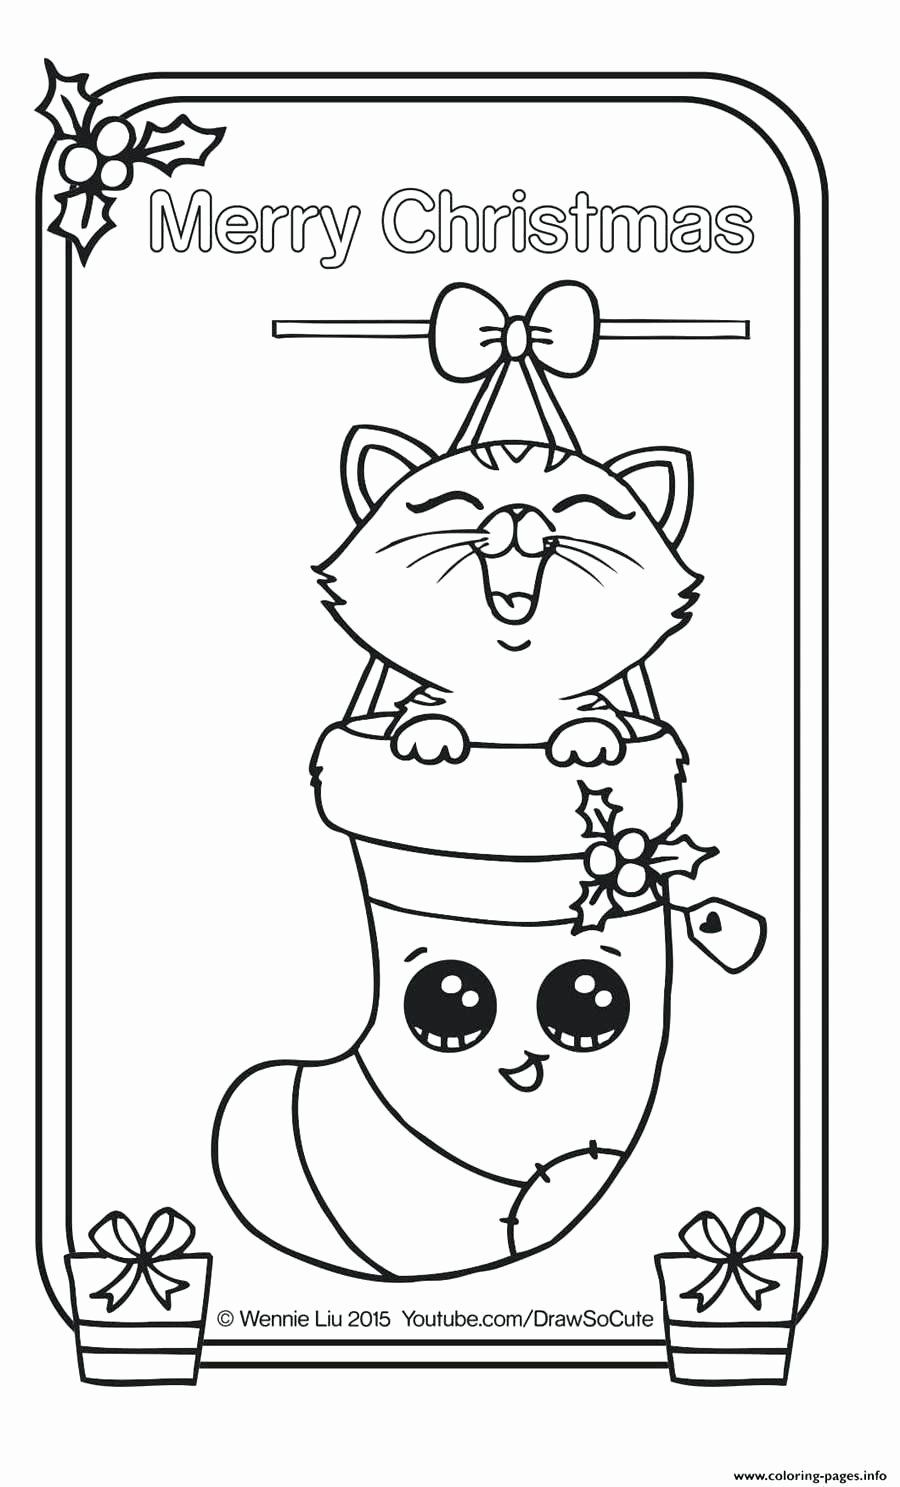 Coloring Pages Of Animals Youtube Best Of Merry Christmas Card Coloring Page Cute Coloring Pages Printable Christmas Cards Printable Christmas Coloring Pages